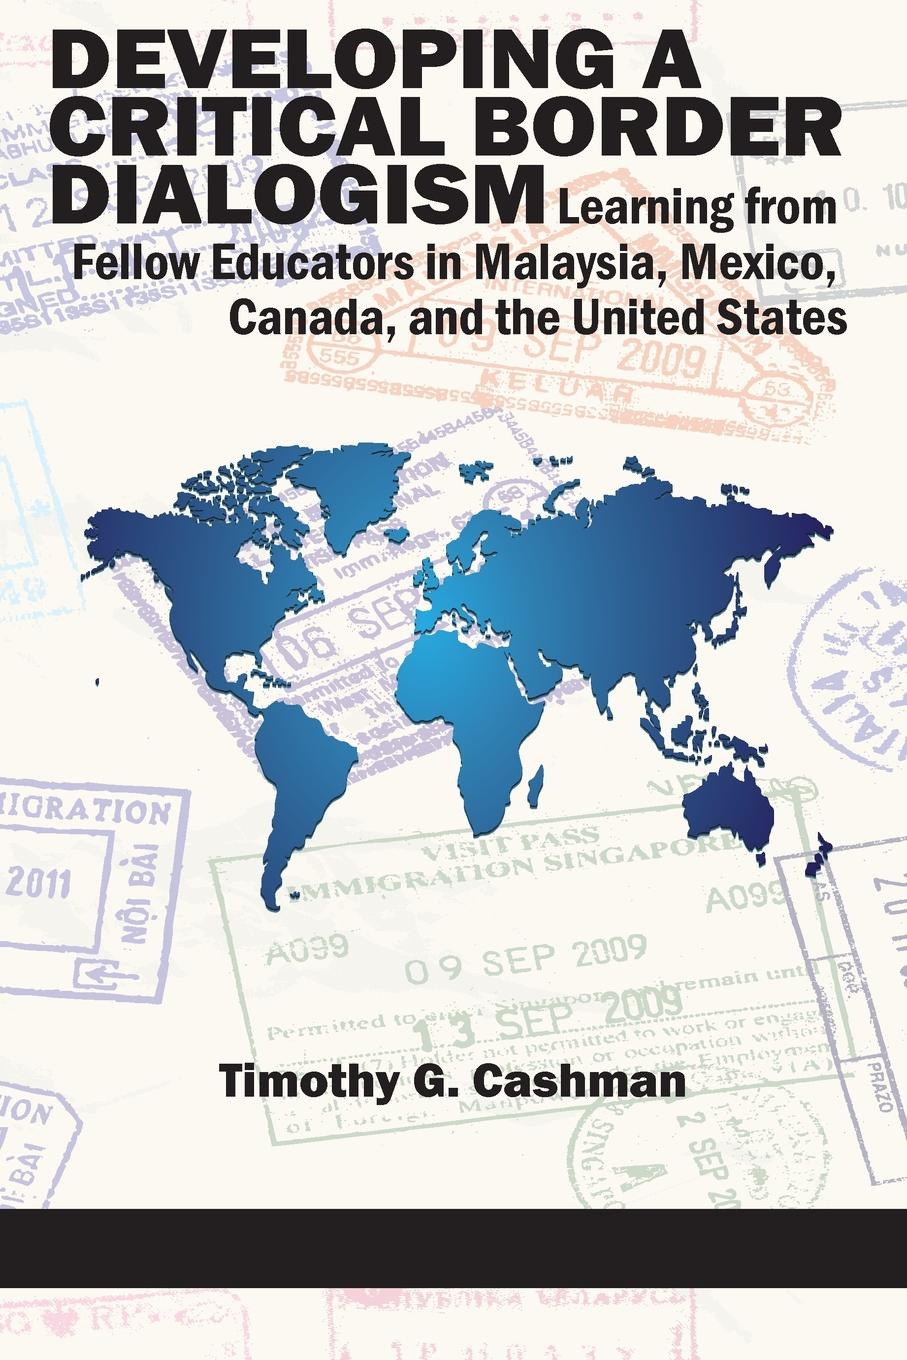 Timothy G. Cashman Developing a Critical Border Dialogism. Learning from Fellow Educators in Malaysia, Mexico, Canada, and the United States